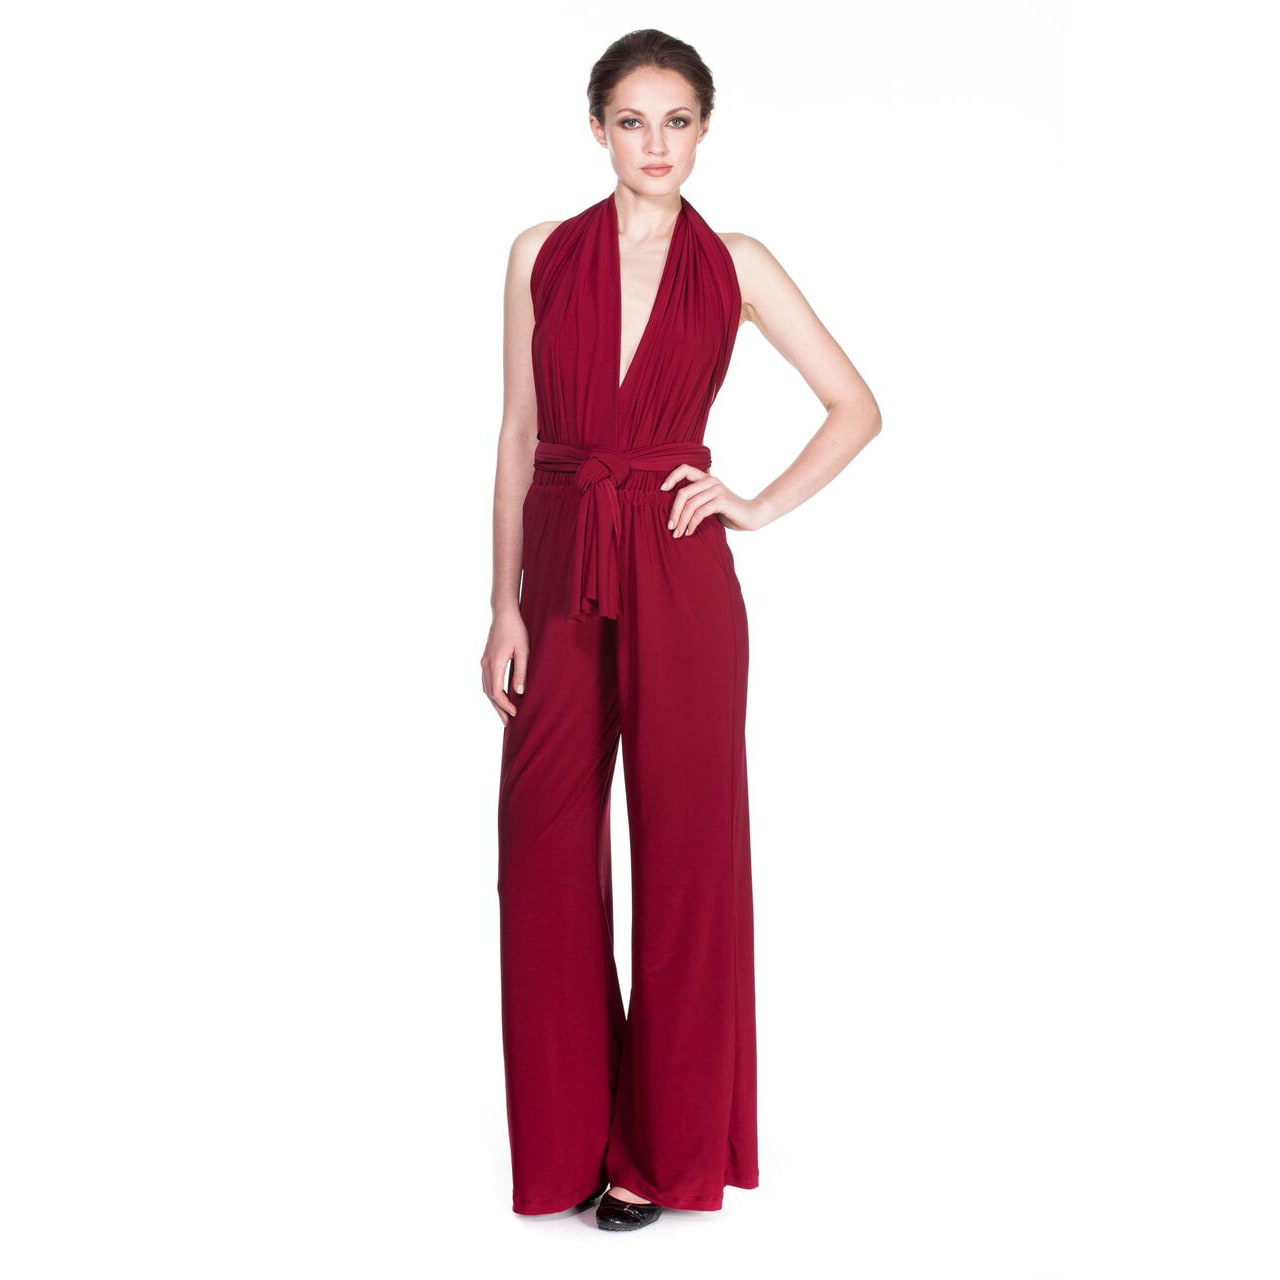 51cfa0a852a Shop Women s Ladies Multiway Jumpsuit Rompers Playsuits - Free Shipping  Today - Overstock.com - 9776426